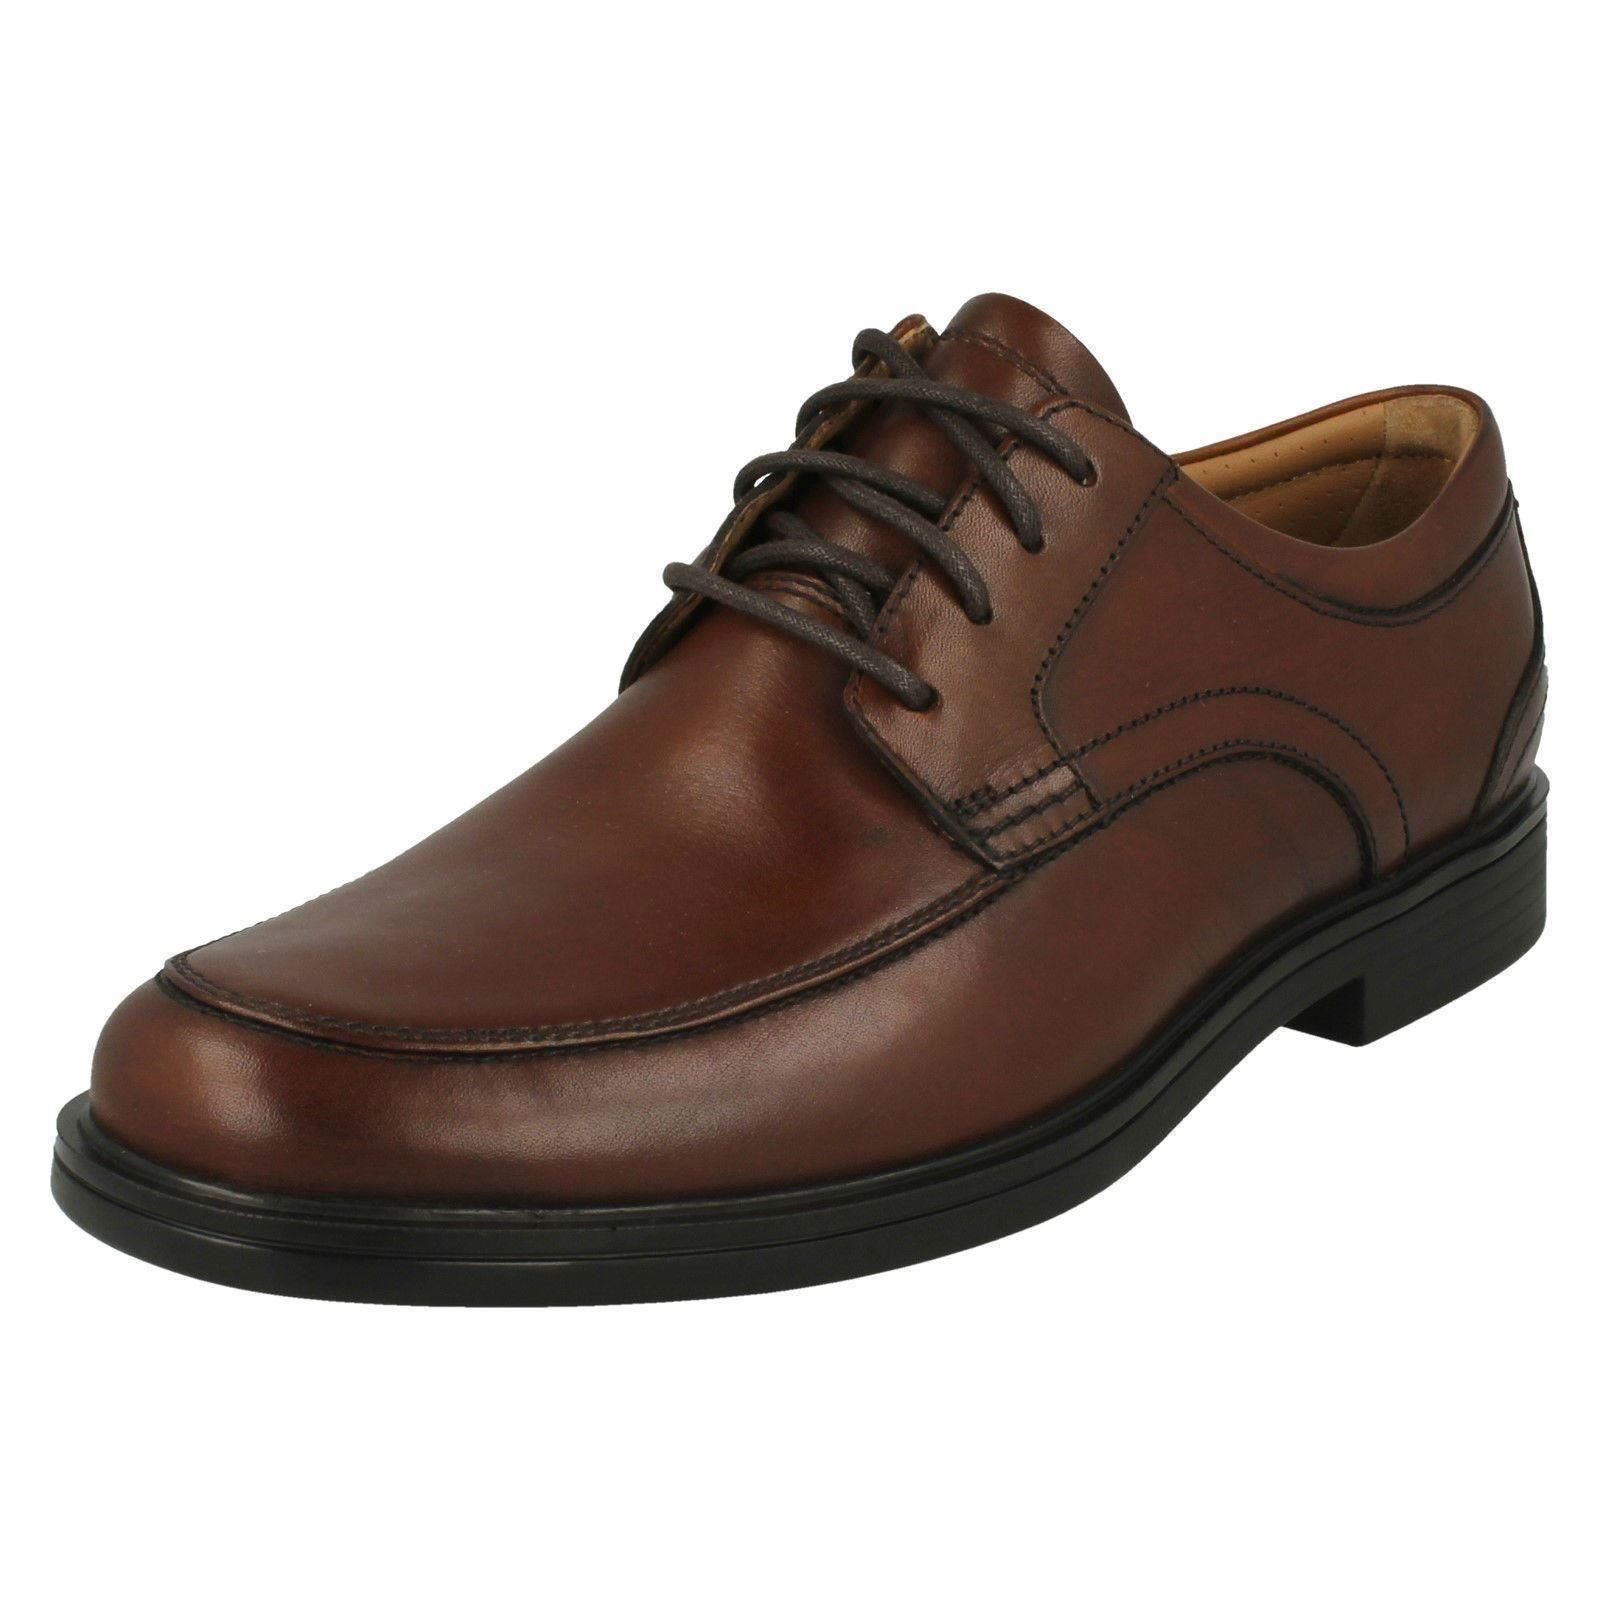 New Mens SOLE Tan Aldric Leather Shoes Lace Up